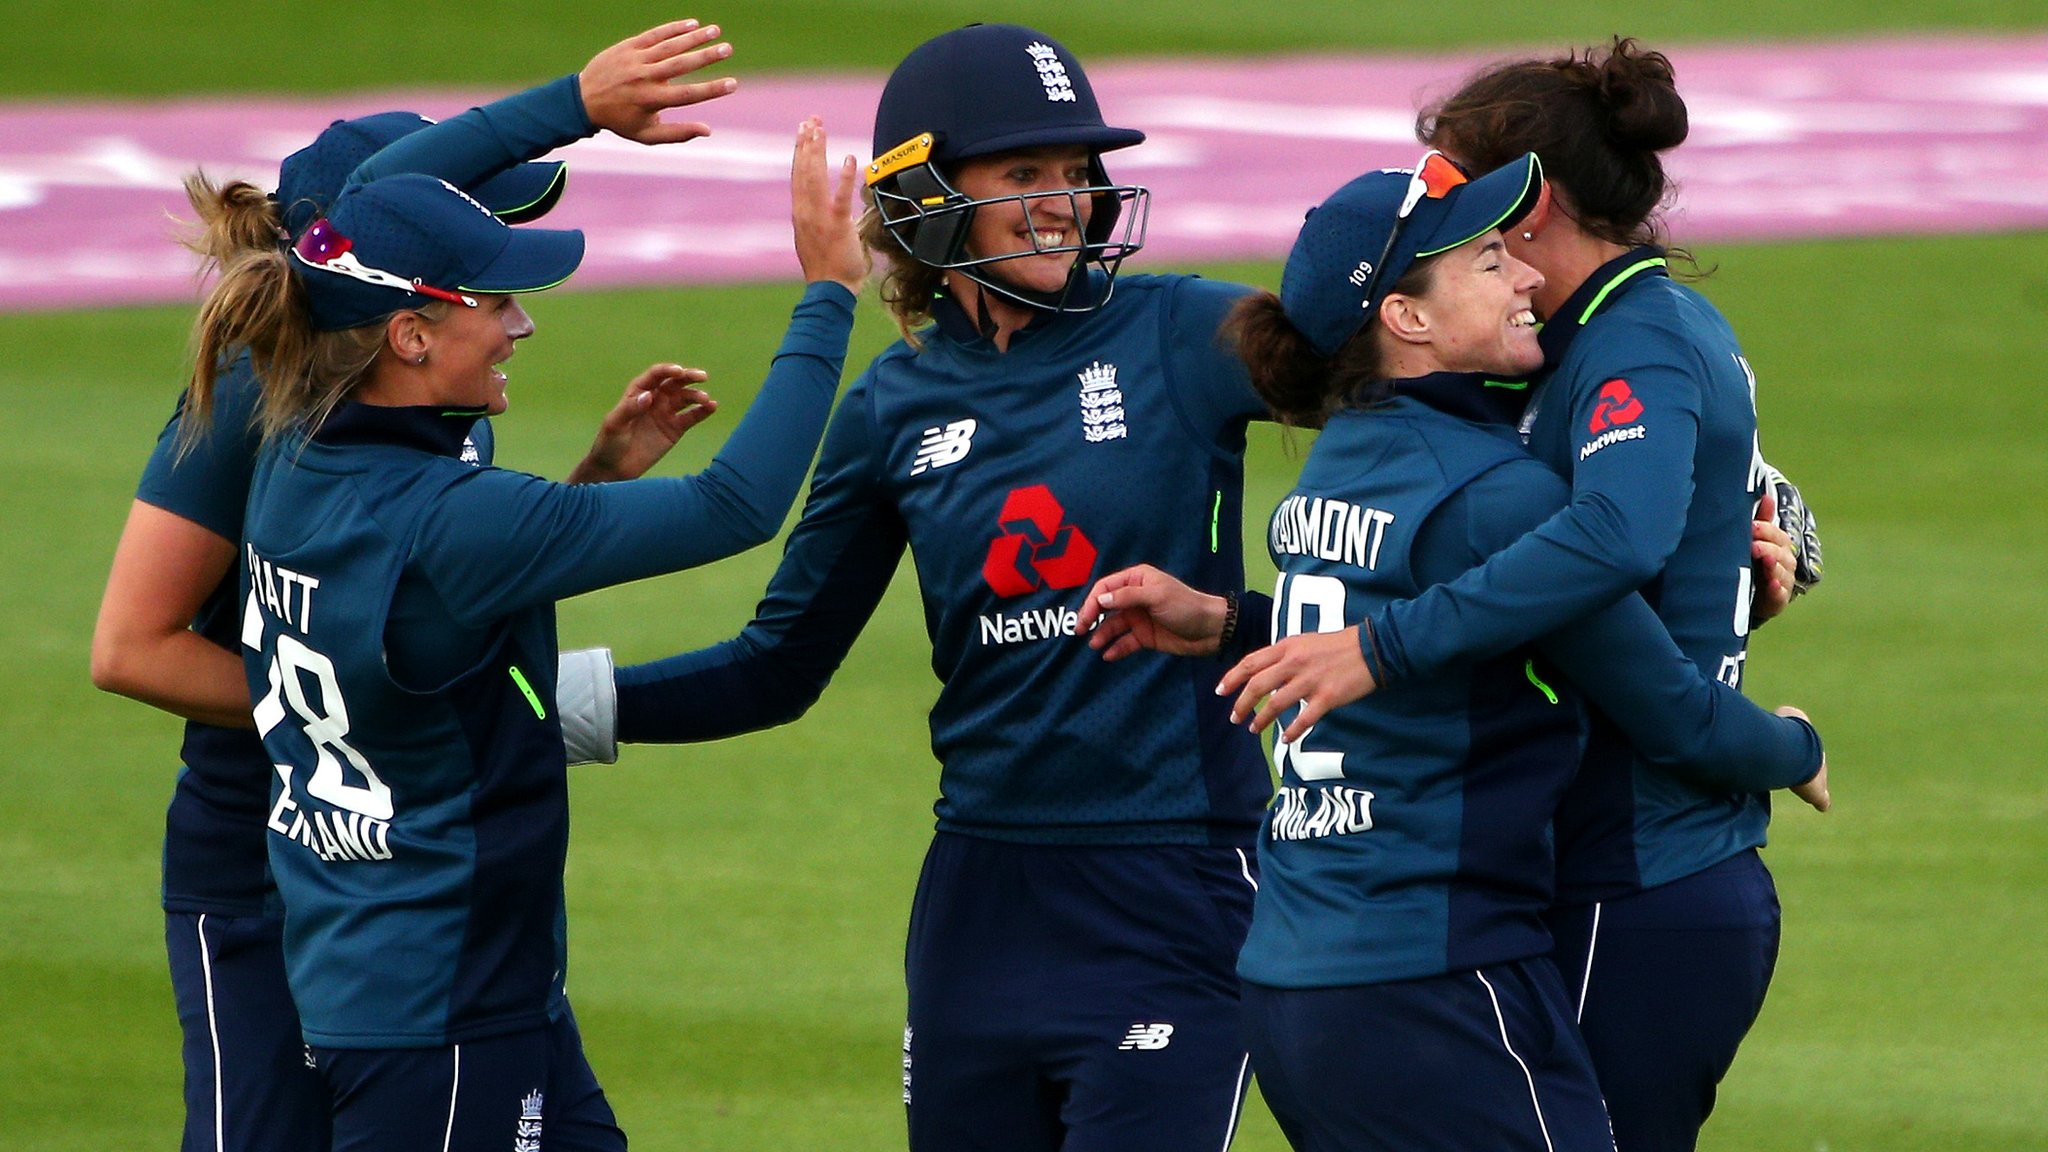 Beaumont ton steers England to 2-1 series win over South Africa